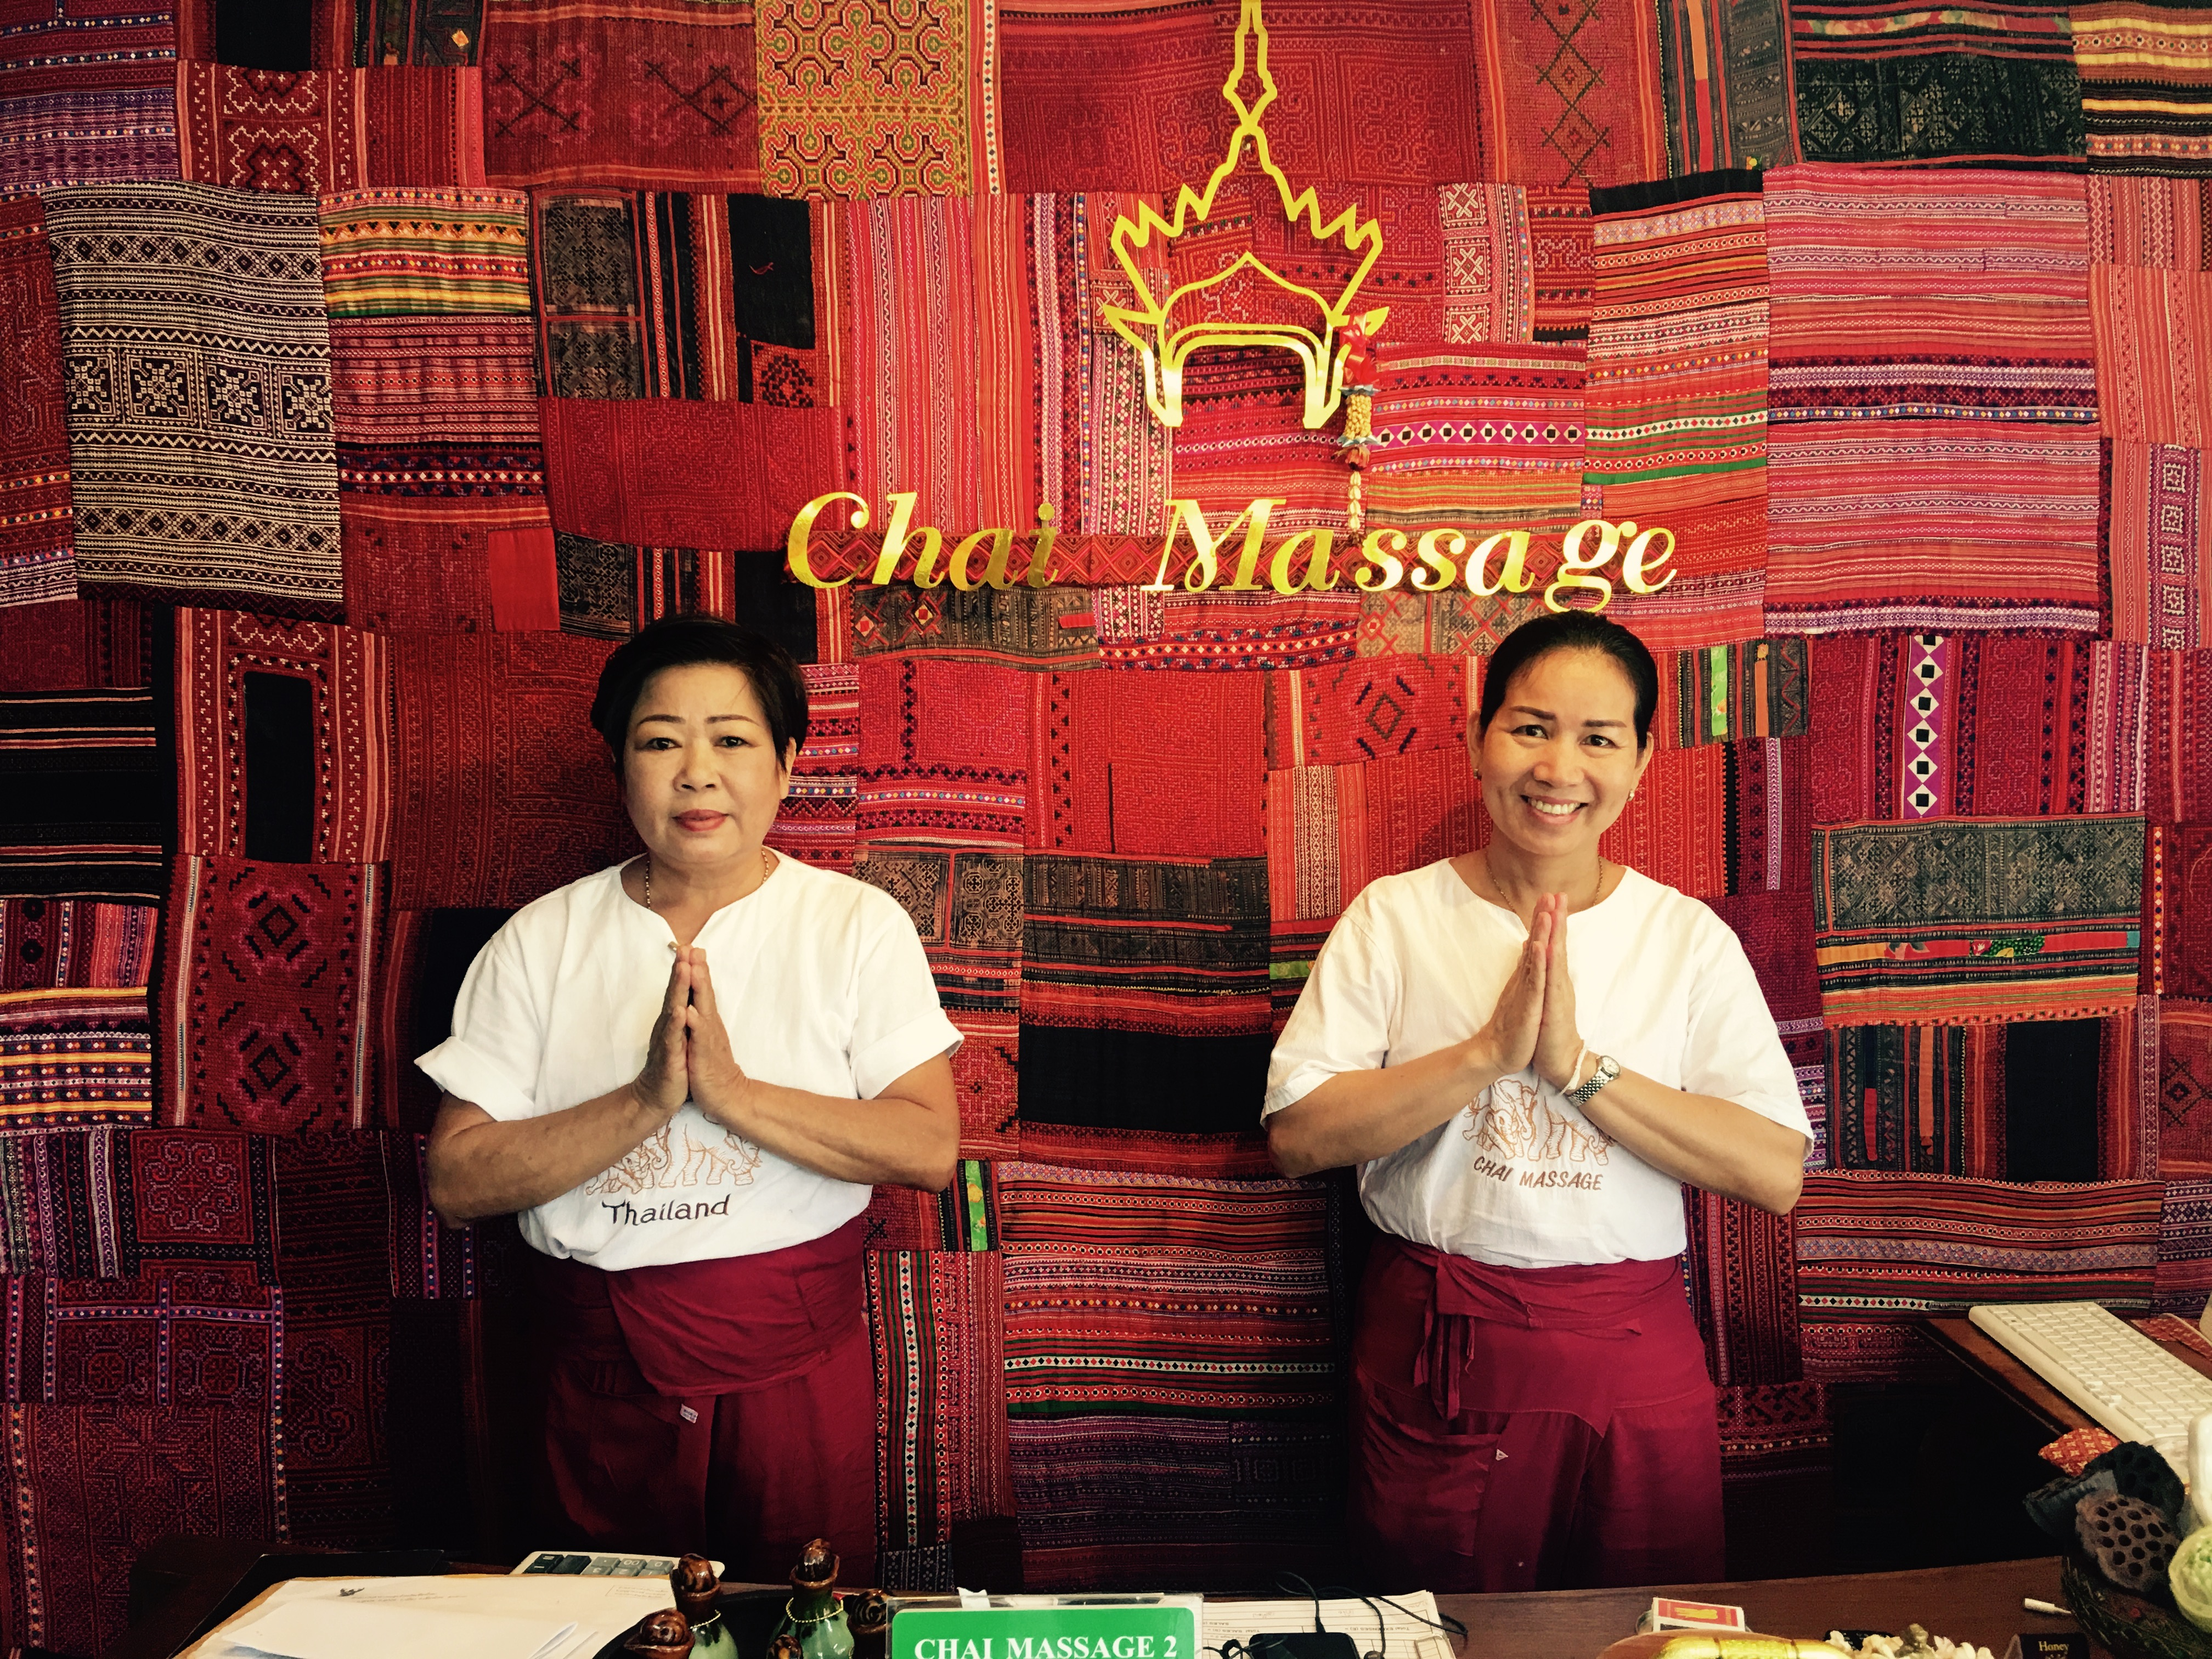 chai massage ,  night bazaar